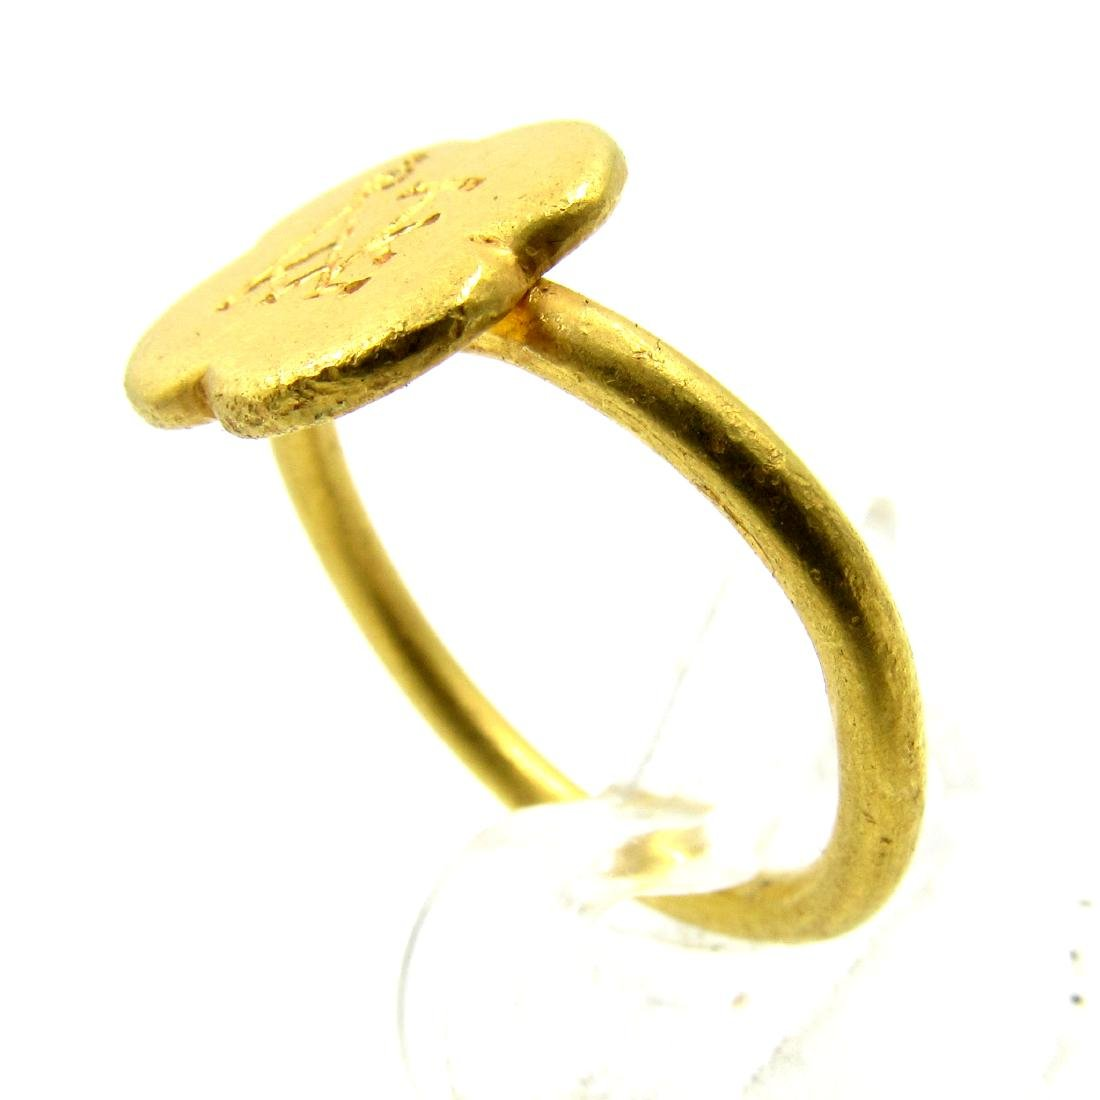 Medieval Crusaders Gold Ring with Christian Monogram - 2